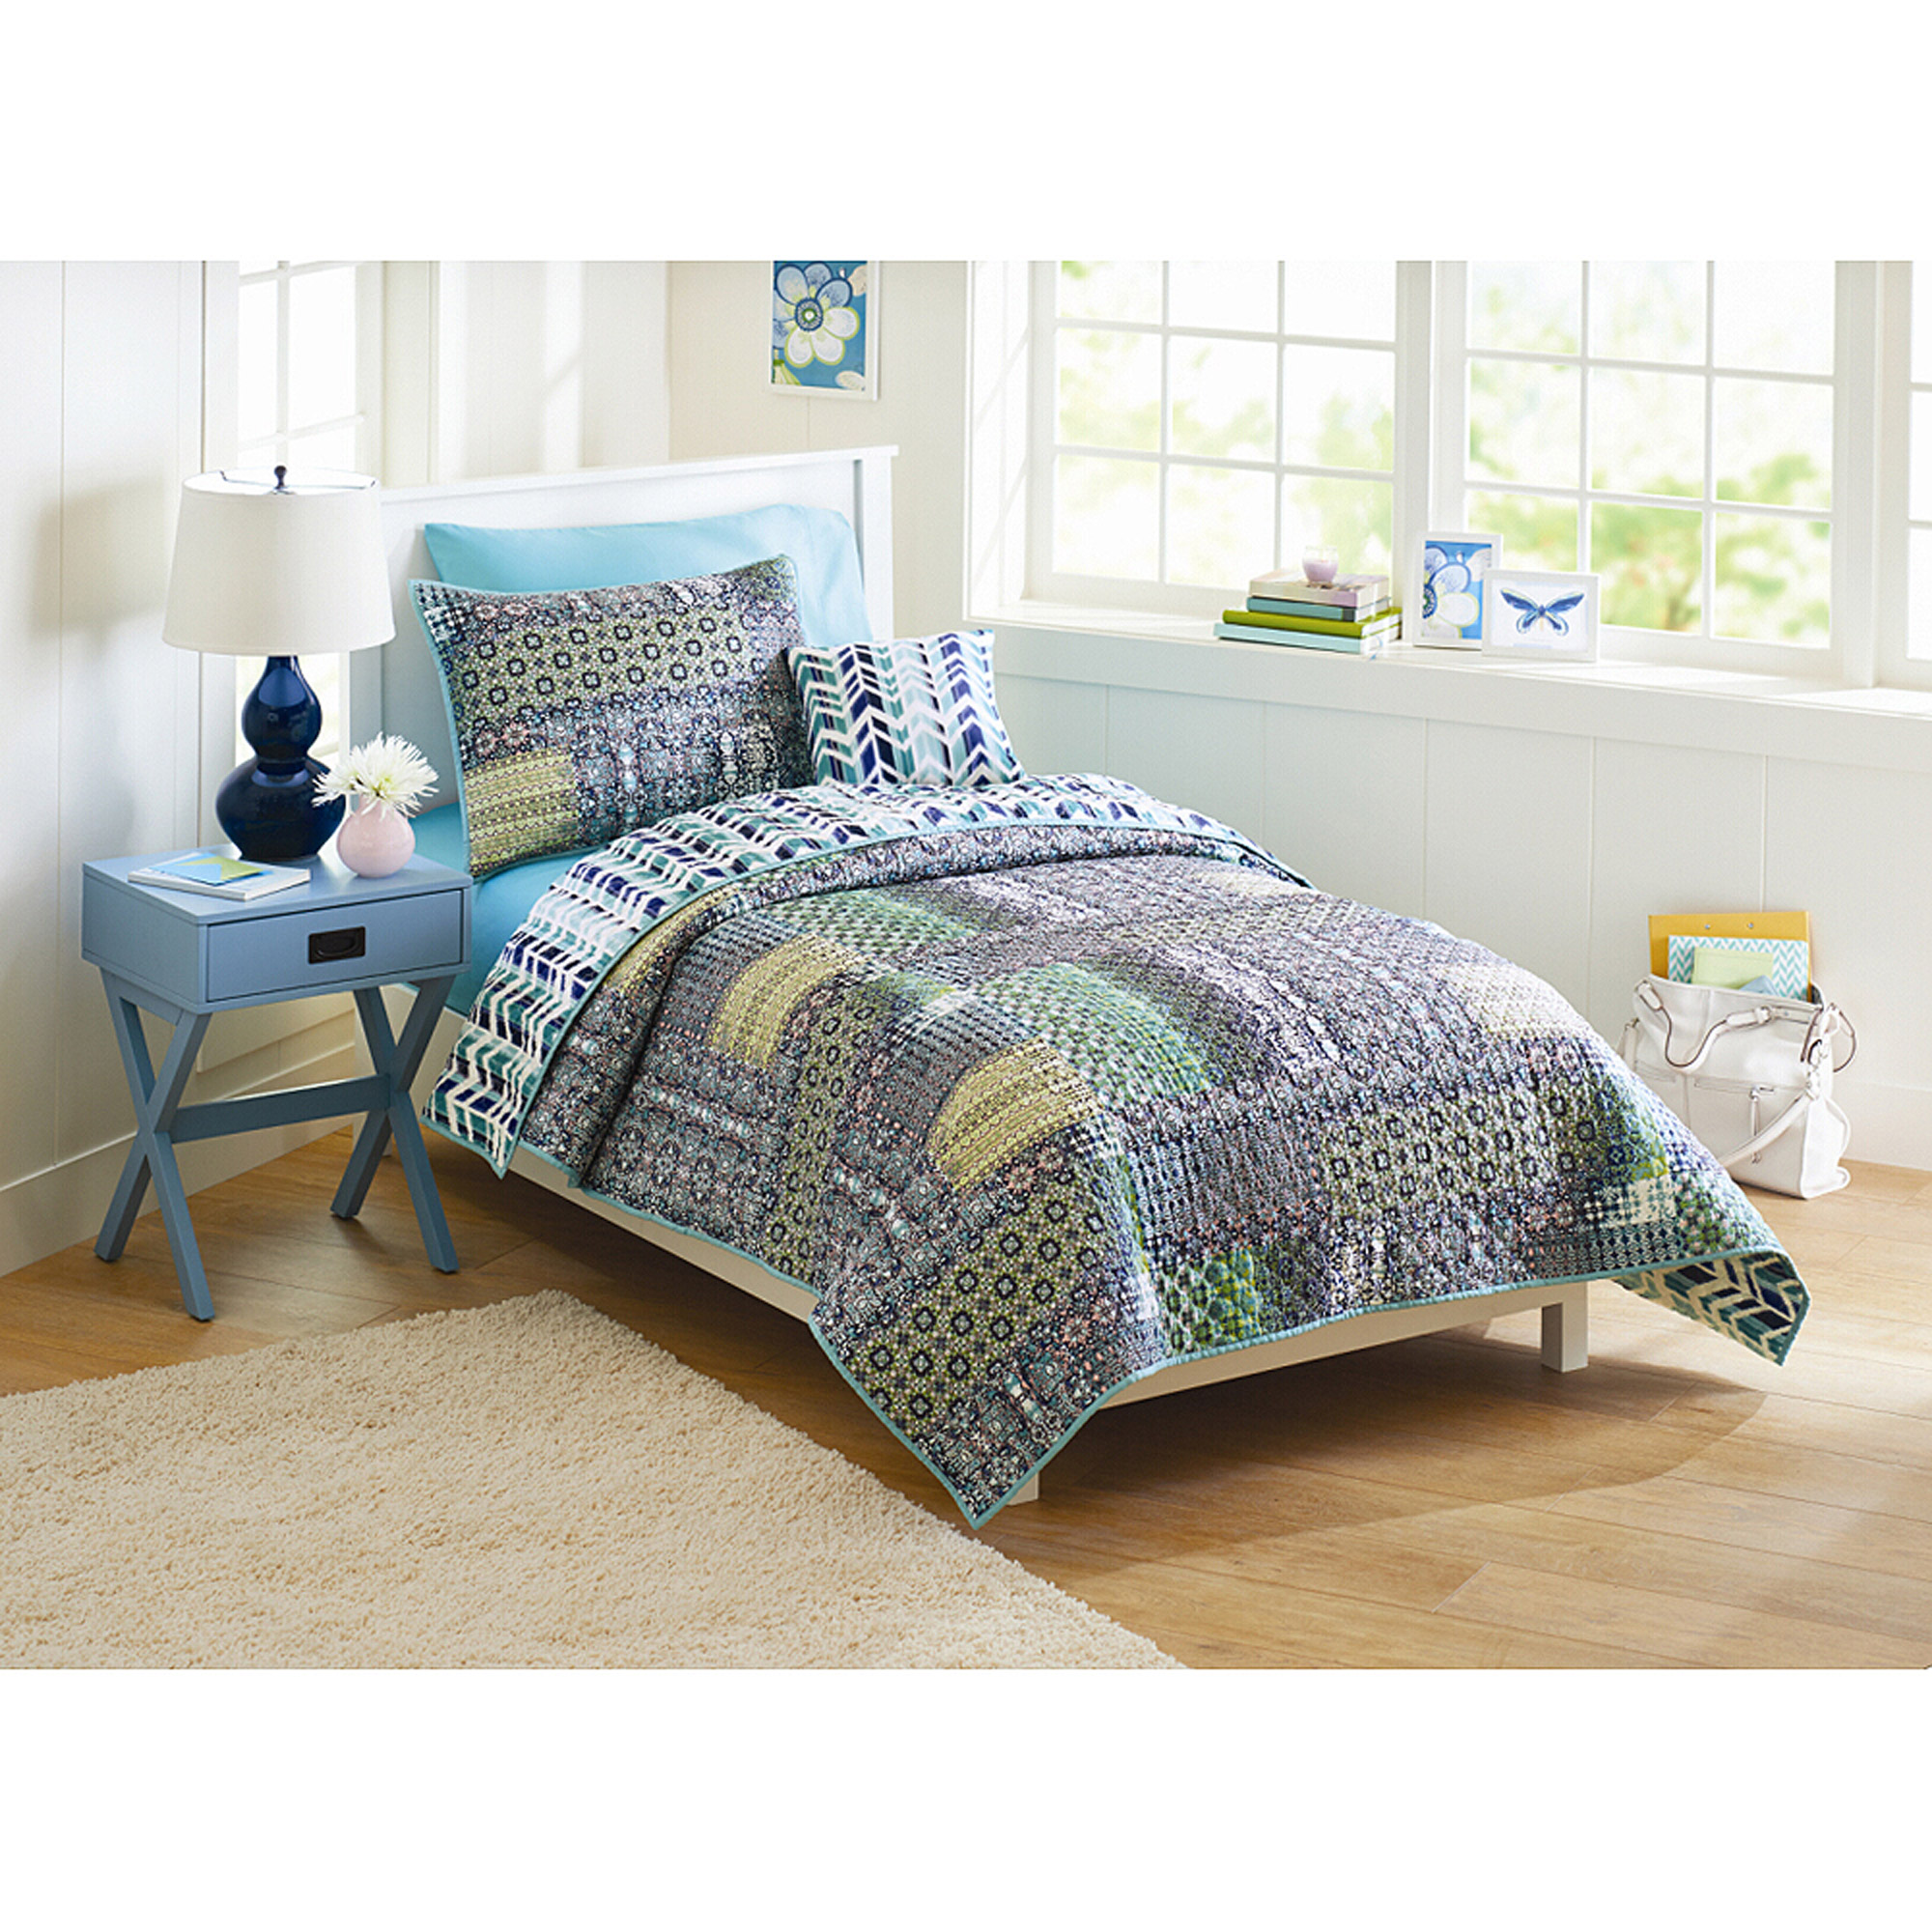 Better Homes and Gardens Global Patchwork Quilt Bedding Set